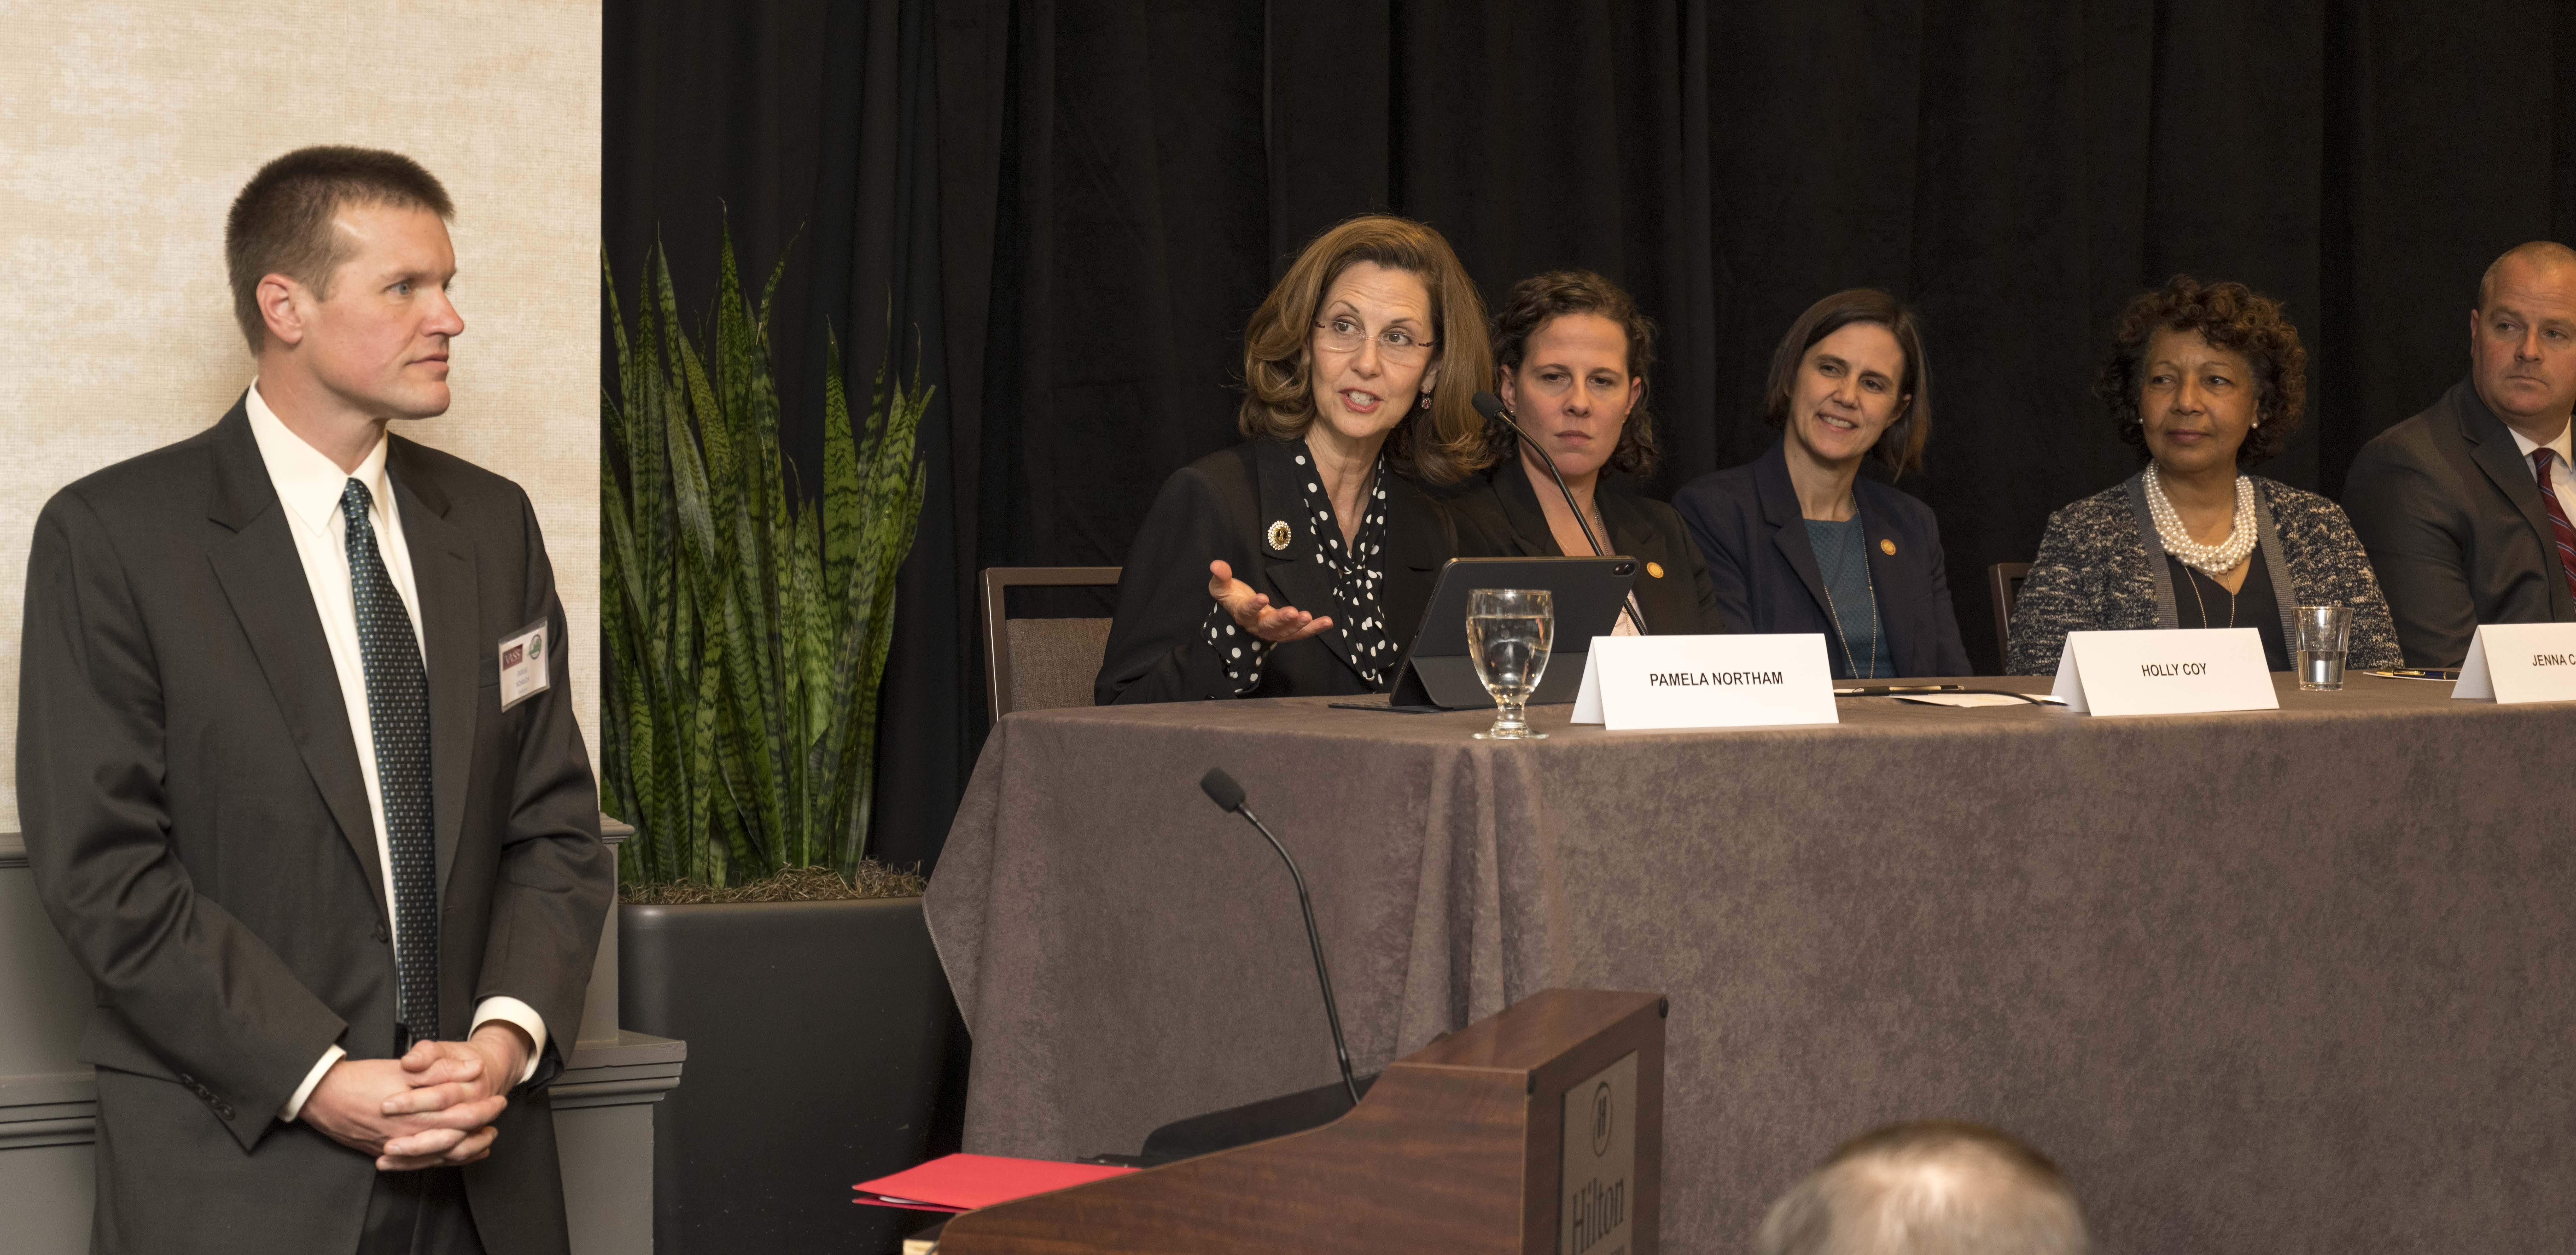 First Lady Leads Panel Discussion on Virginia's Early Childhood Education Initiatives